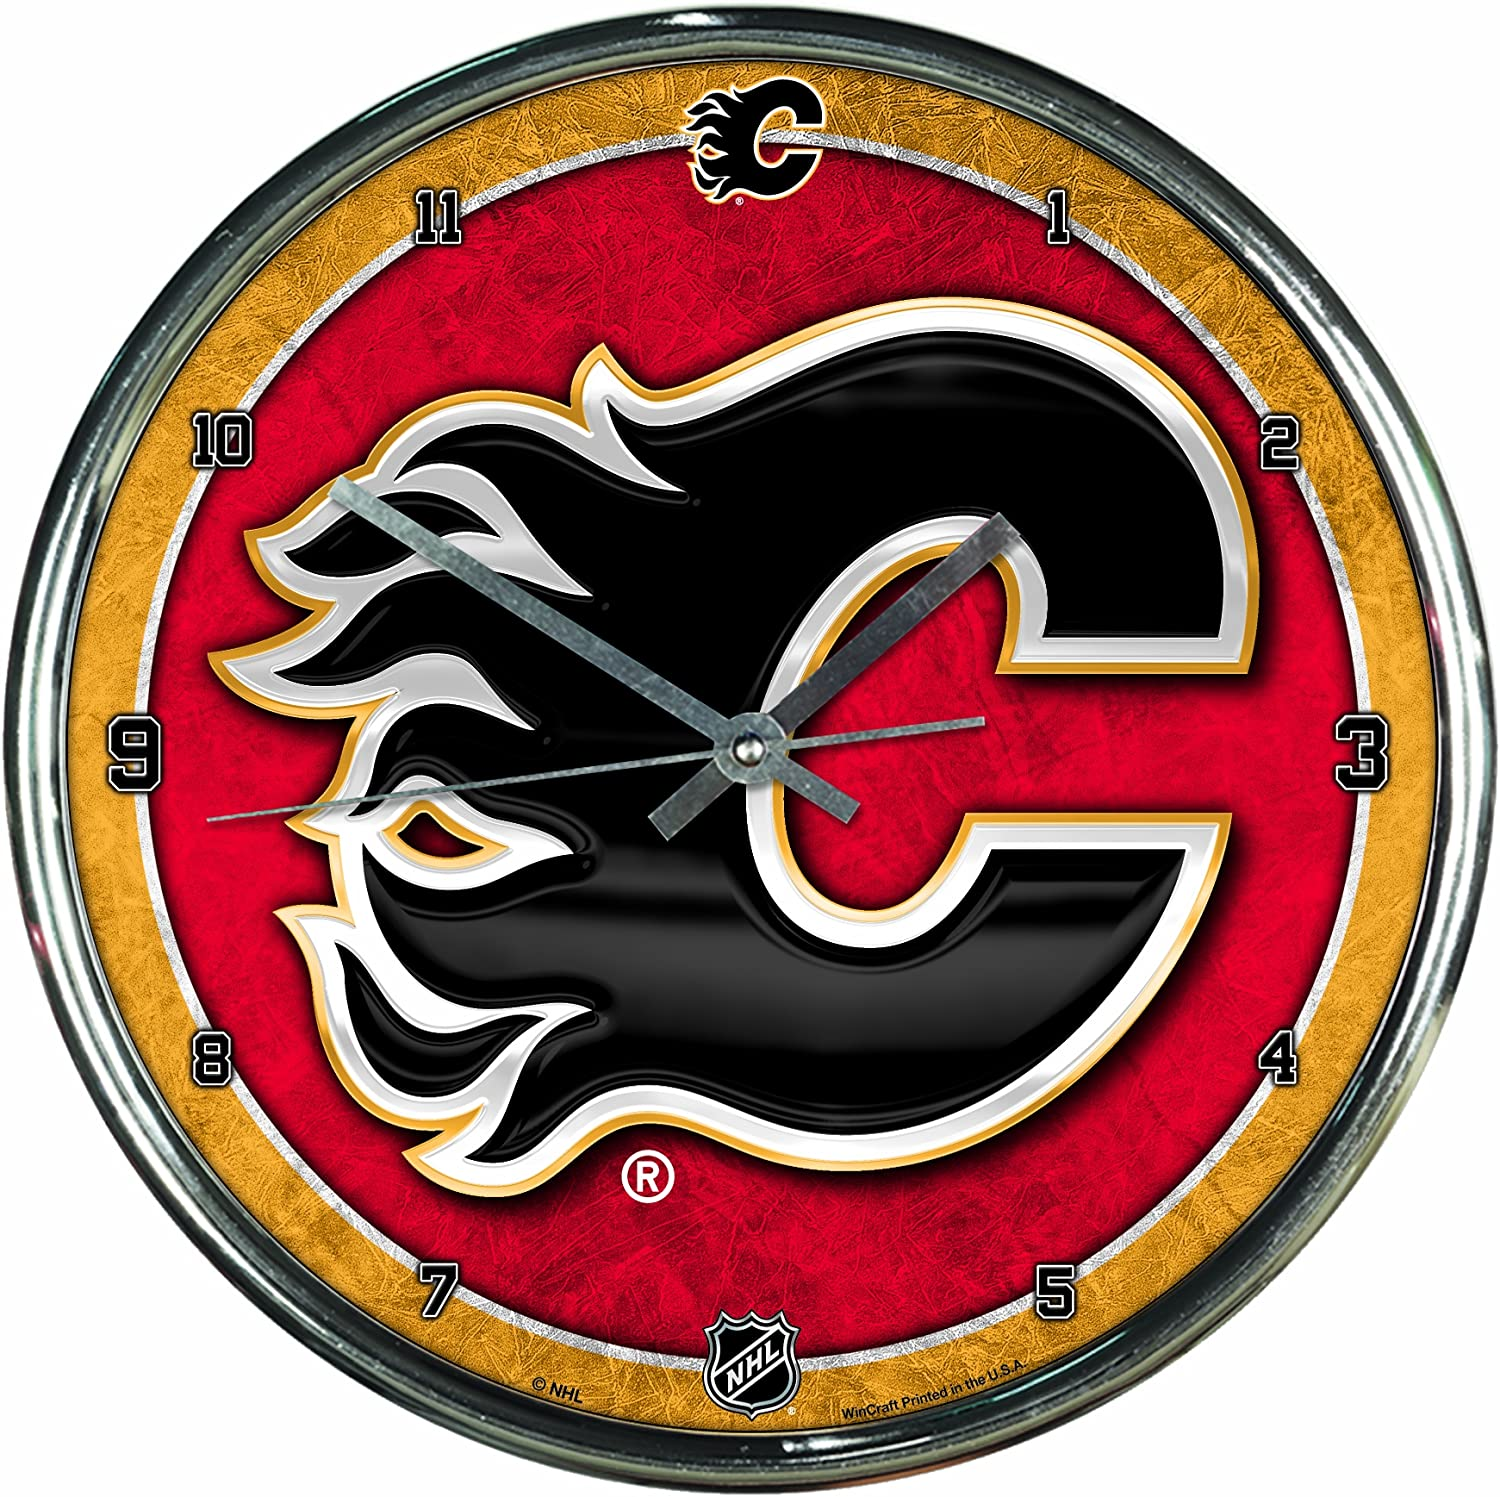 WinCraft NHL Max 80% OFF Clock New product Chrome